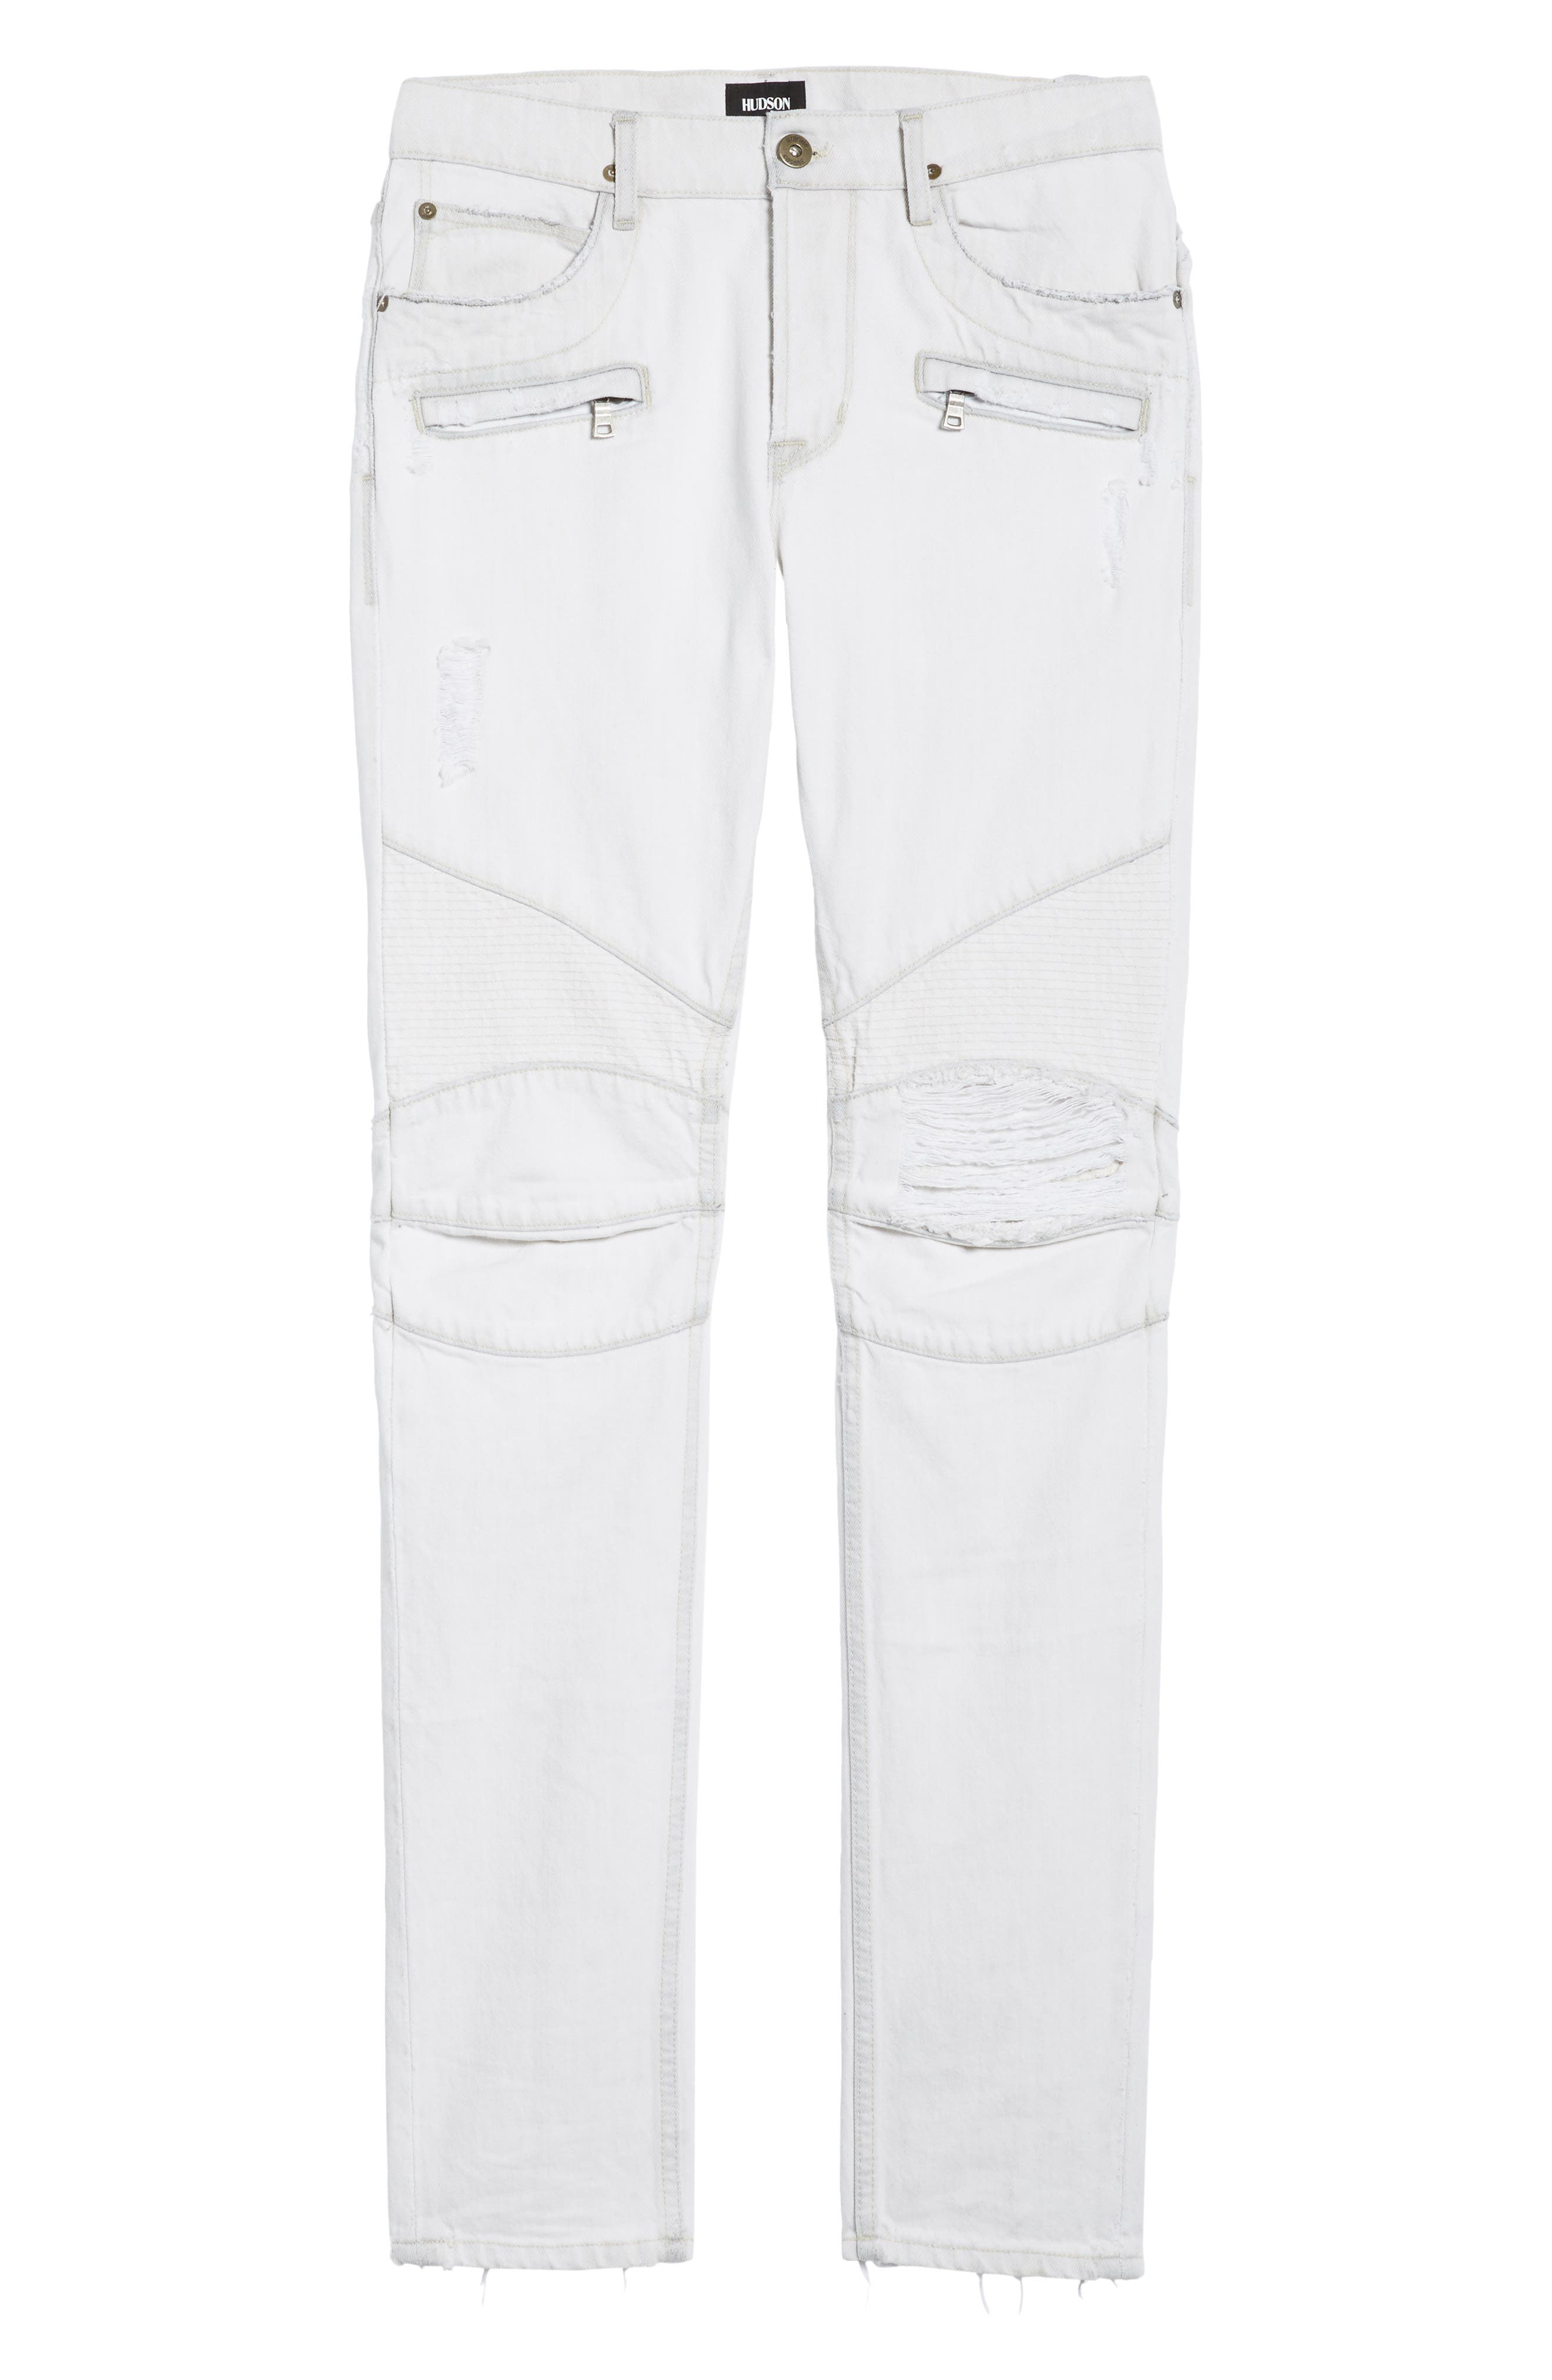 Blinder Biker Skinny Fit Moto Jeans,                             Alternate thumbnail 6, color,                             Extracted White